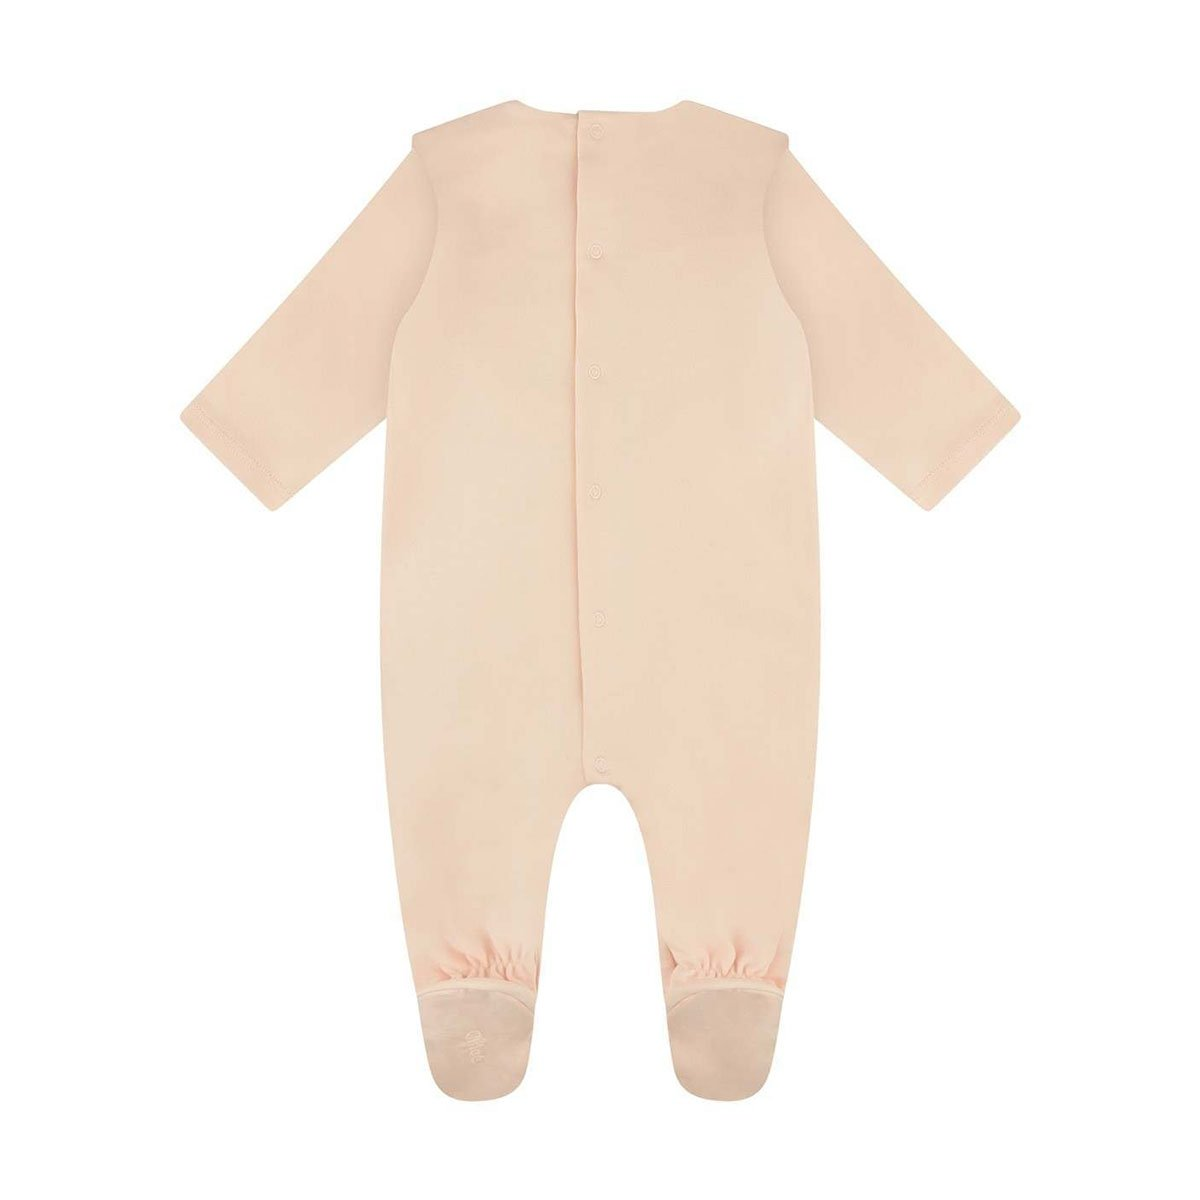 Chloe - Pajamas For Baby Girls, Pink